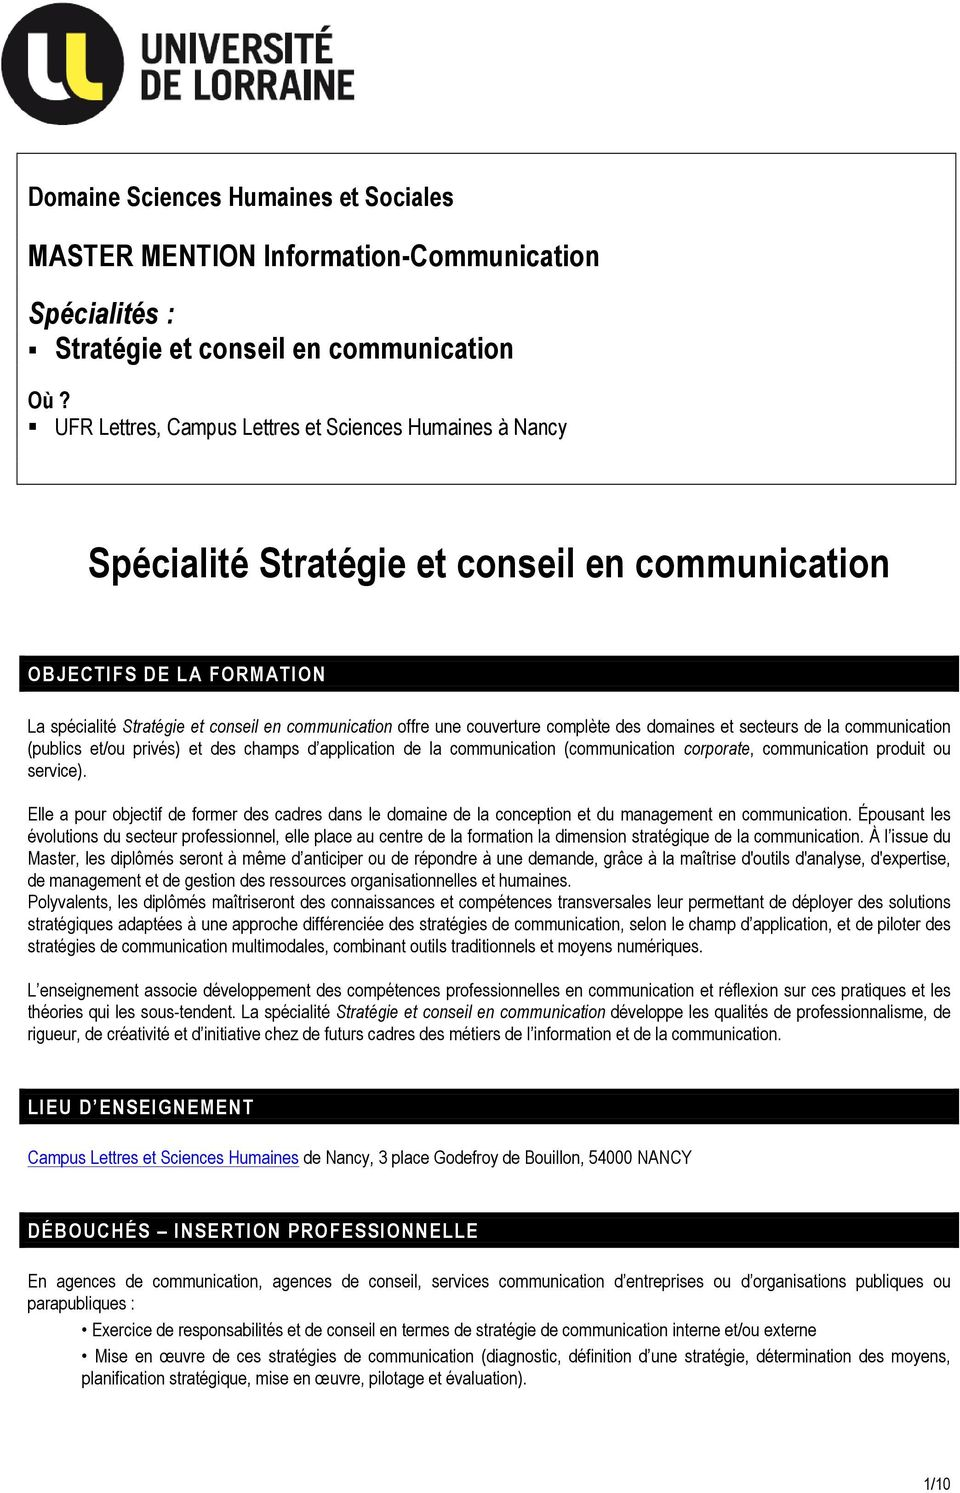 couverture complète des domaines et secteurs de la communication (publics et/ou privés) et des champs d application de la communication (communication corporate, communication produit ou service).